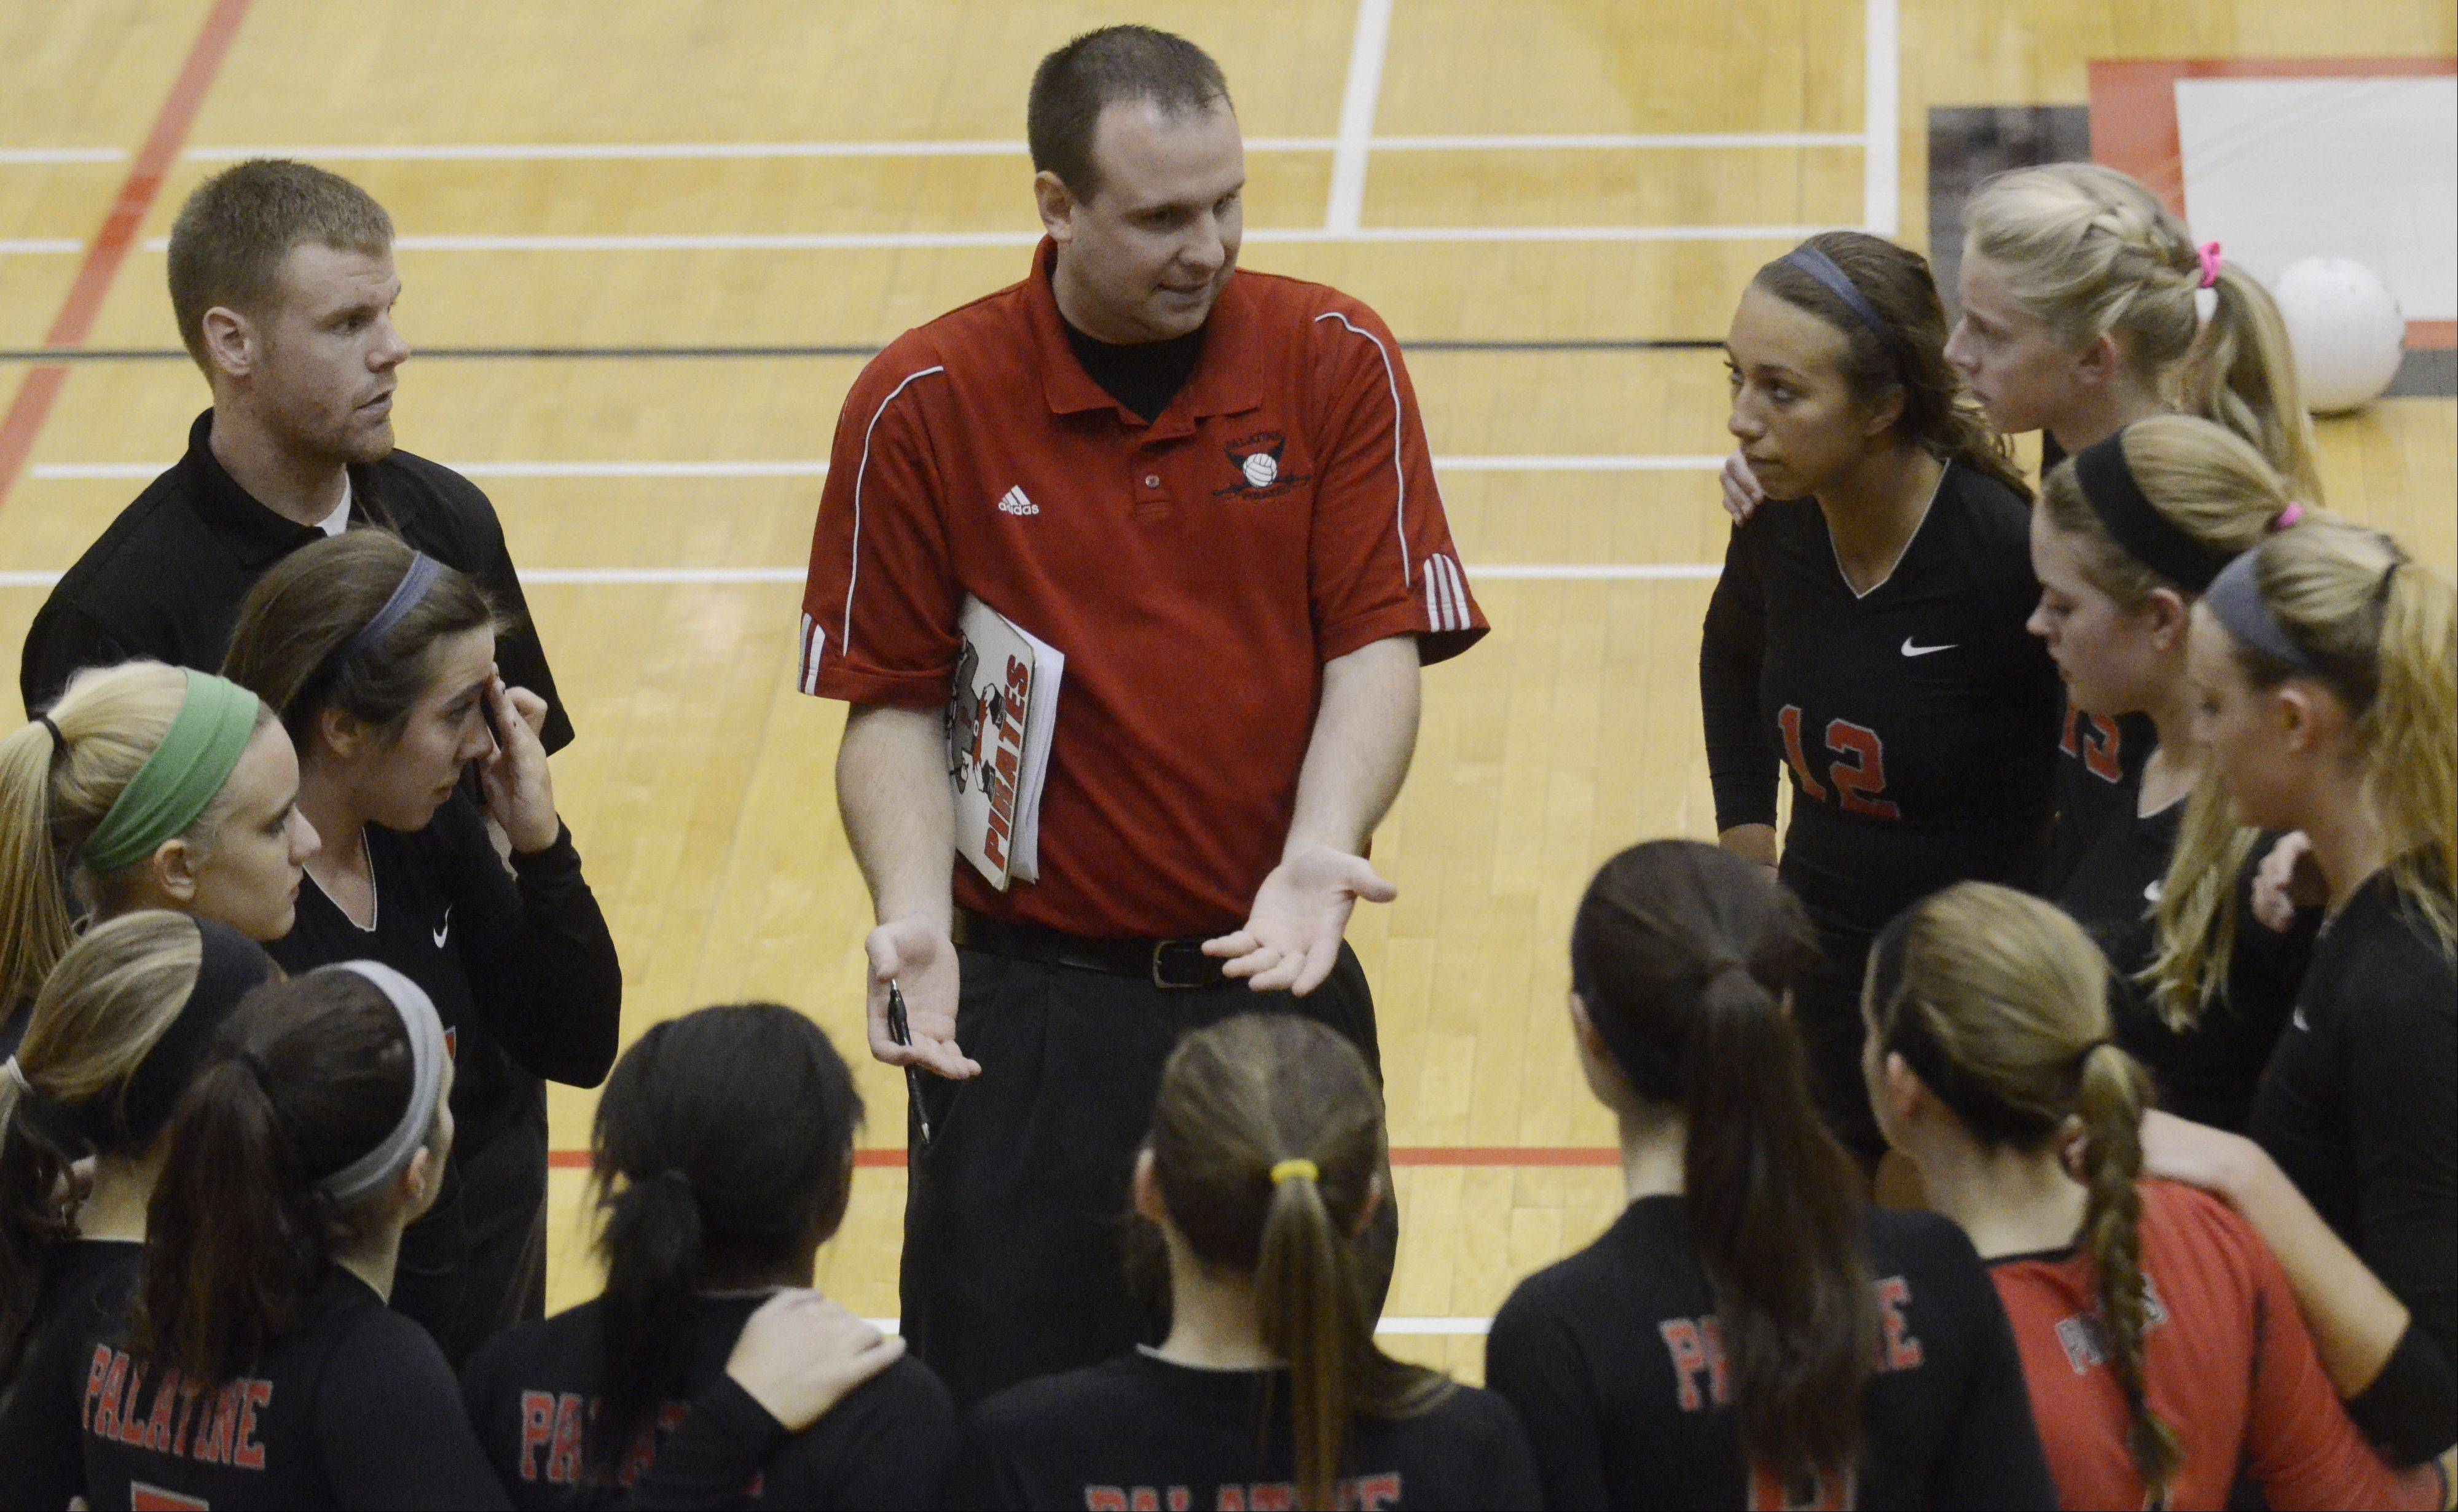 Palatine girls volleyball coach Dan Gavin leads his team during a timeout.